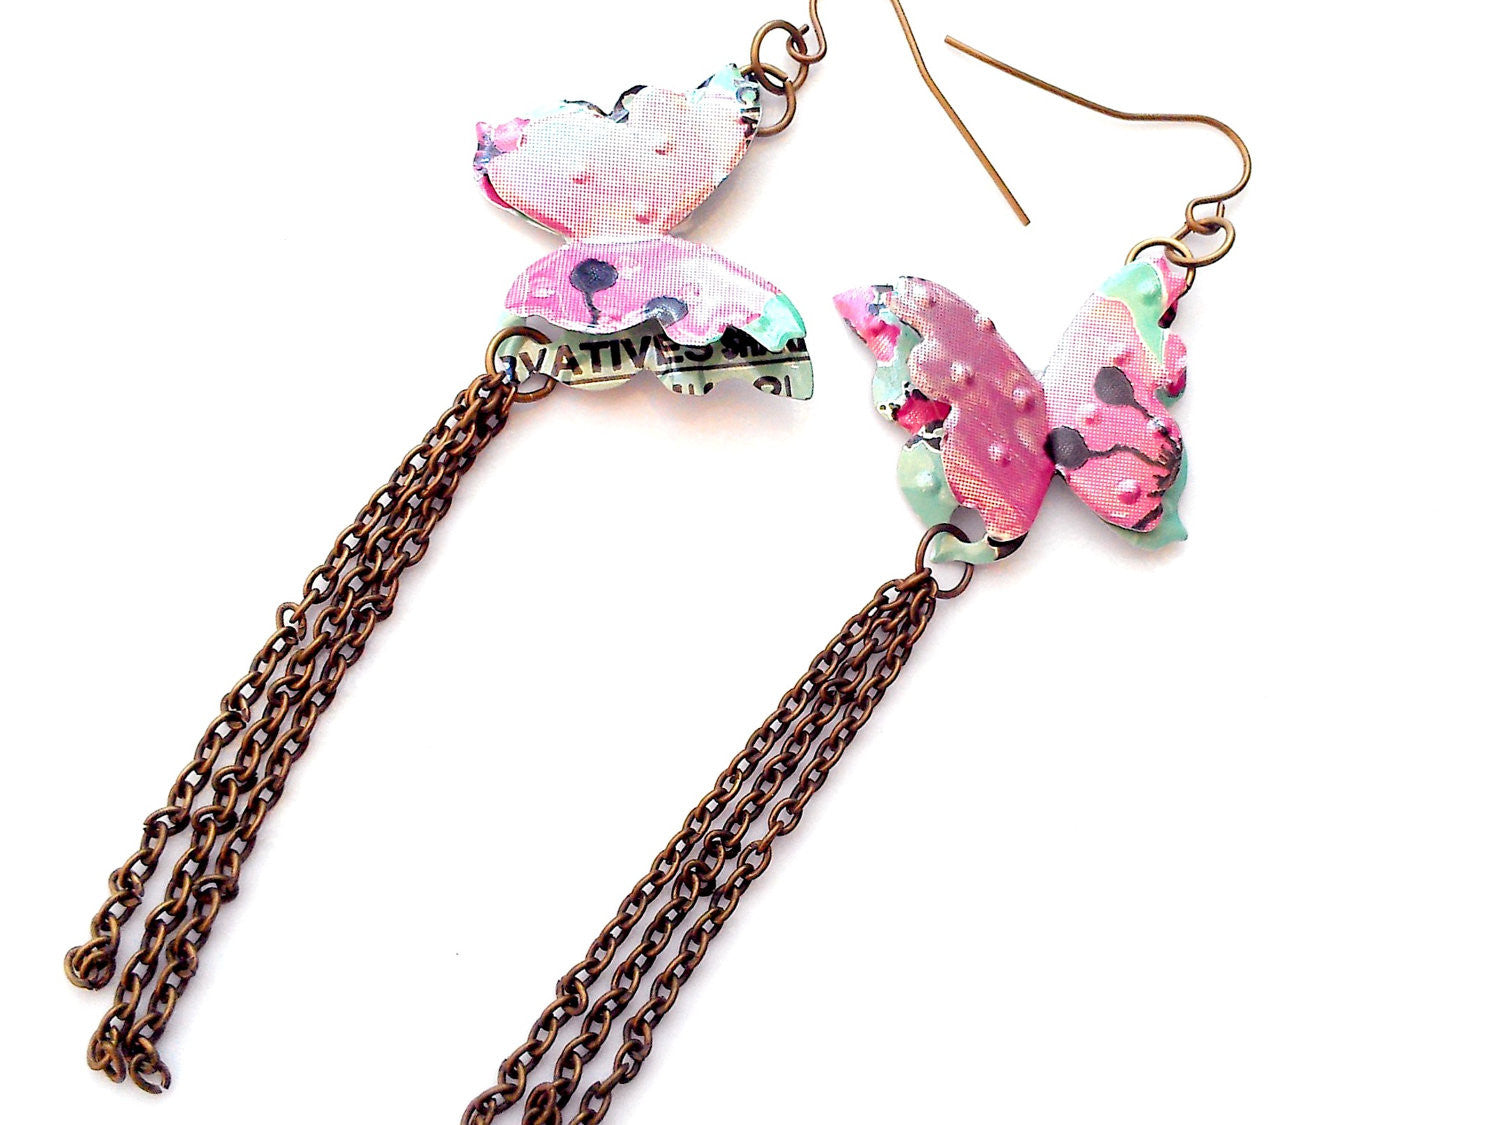 Arizona Tea Butterfly Dangle Chain Earrings